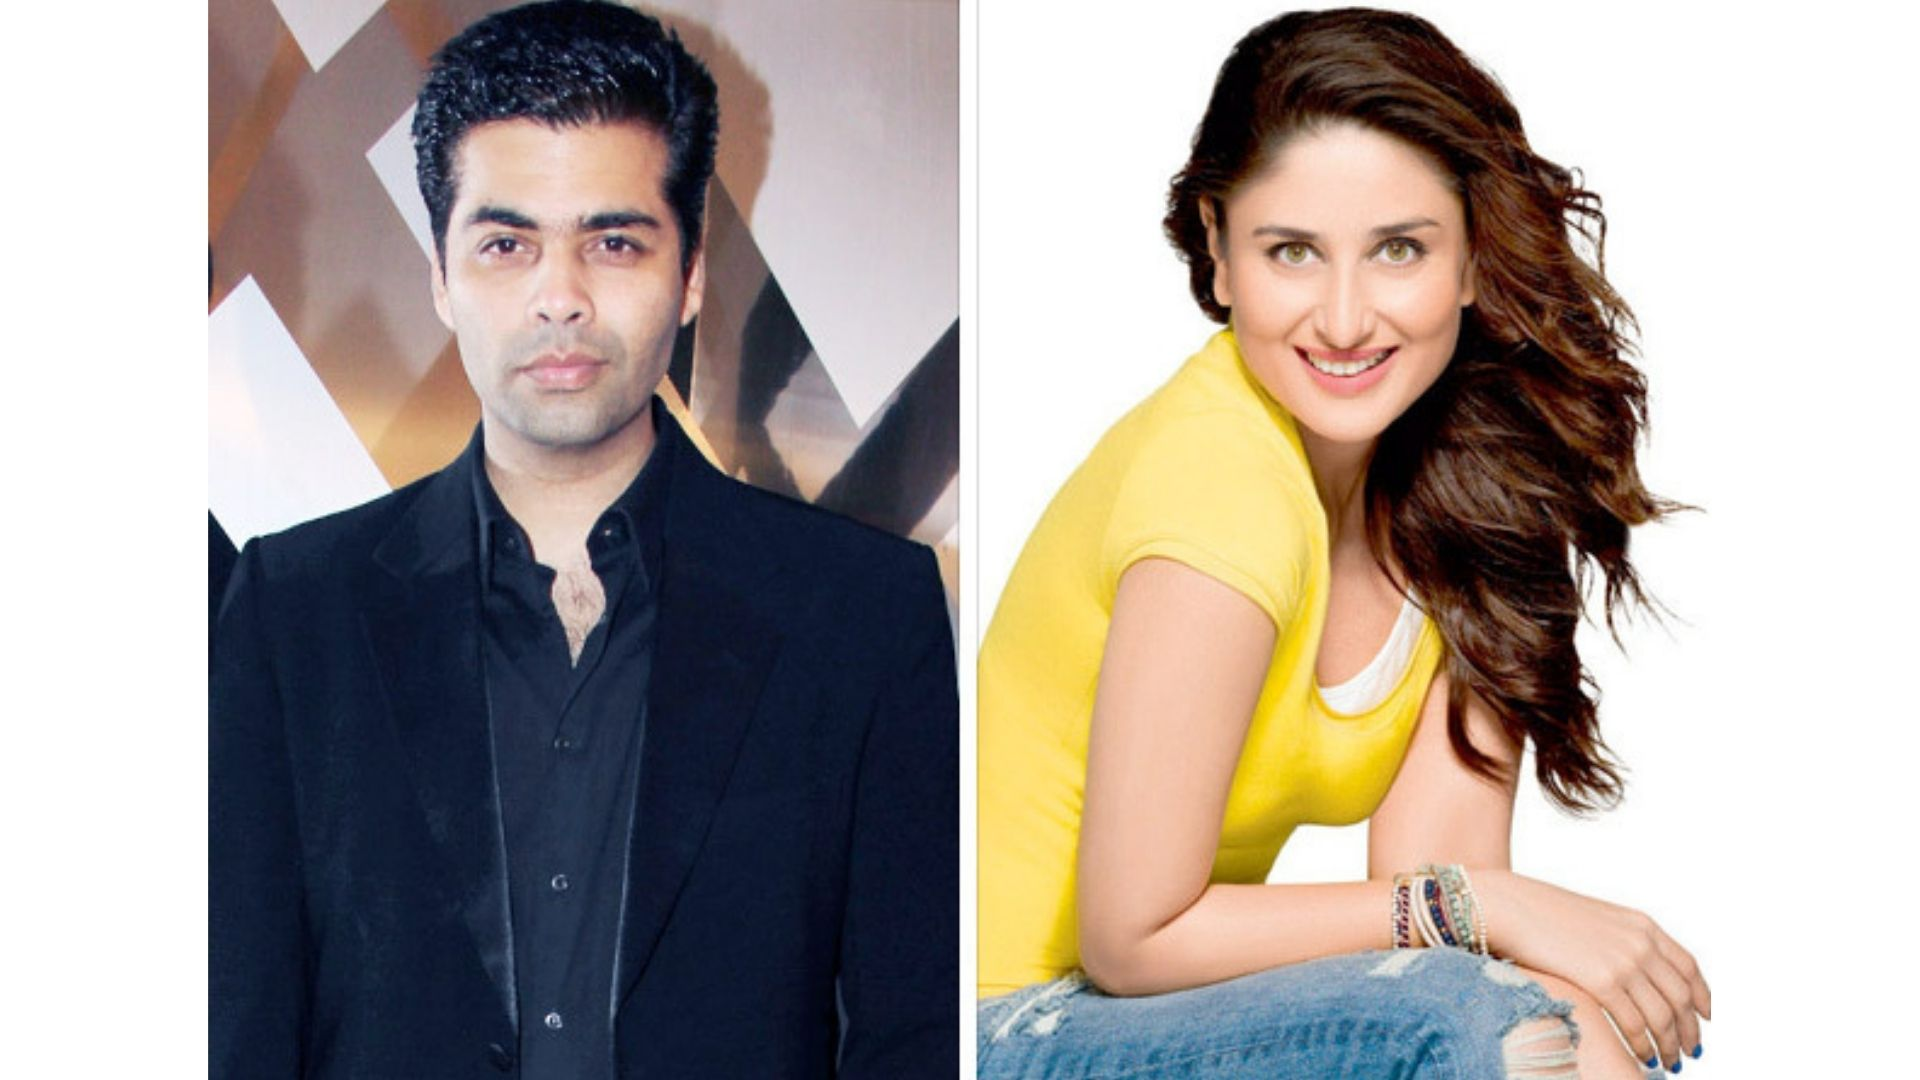 Bollywood BFFs Kareena Kapoor Khan And Karan Johar Come Together For A Project; Recreate Iconic 'Poo' Scene From K3G